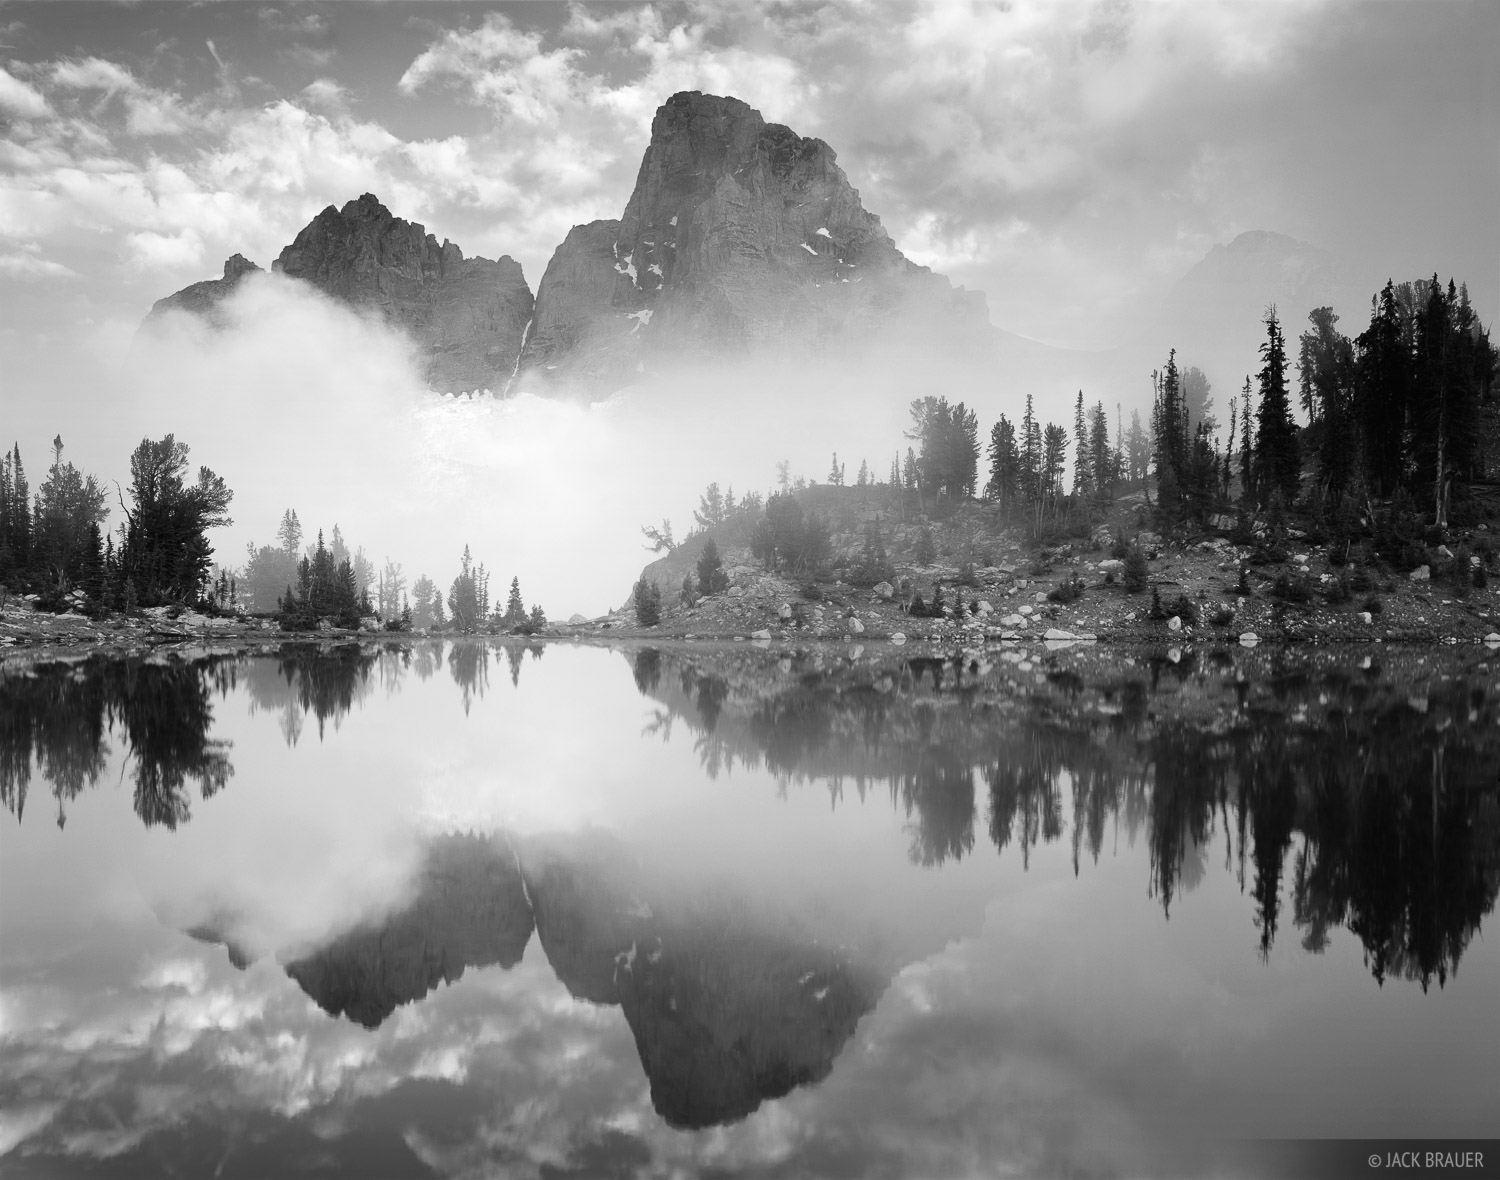 reflection, Grand Teton National Park, Wyoming, Grand Teton, photo